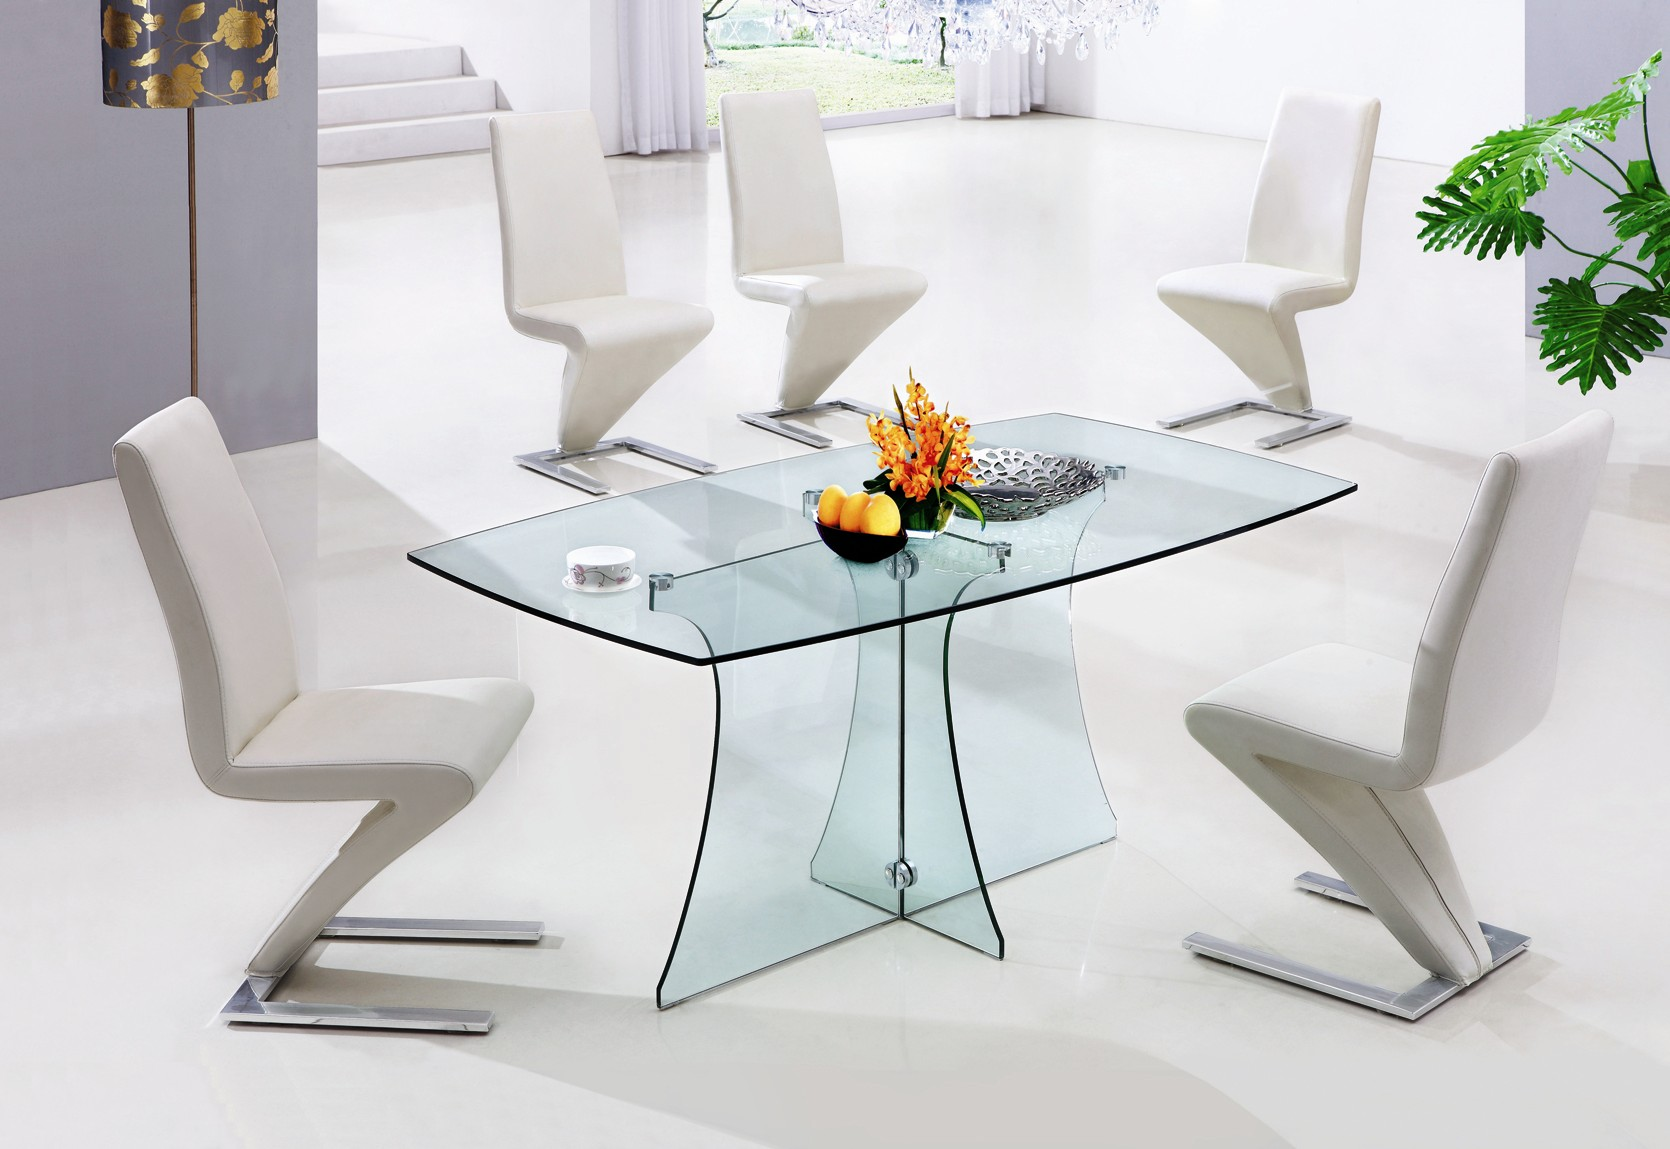 Image of: Modern glass table and chairs